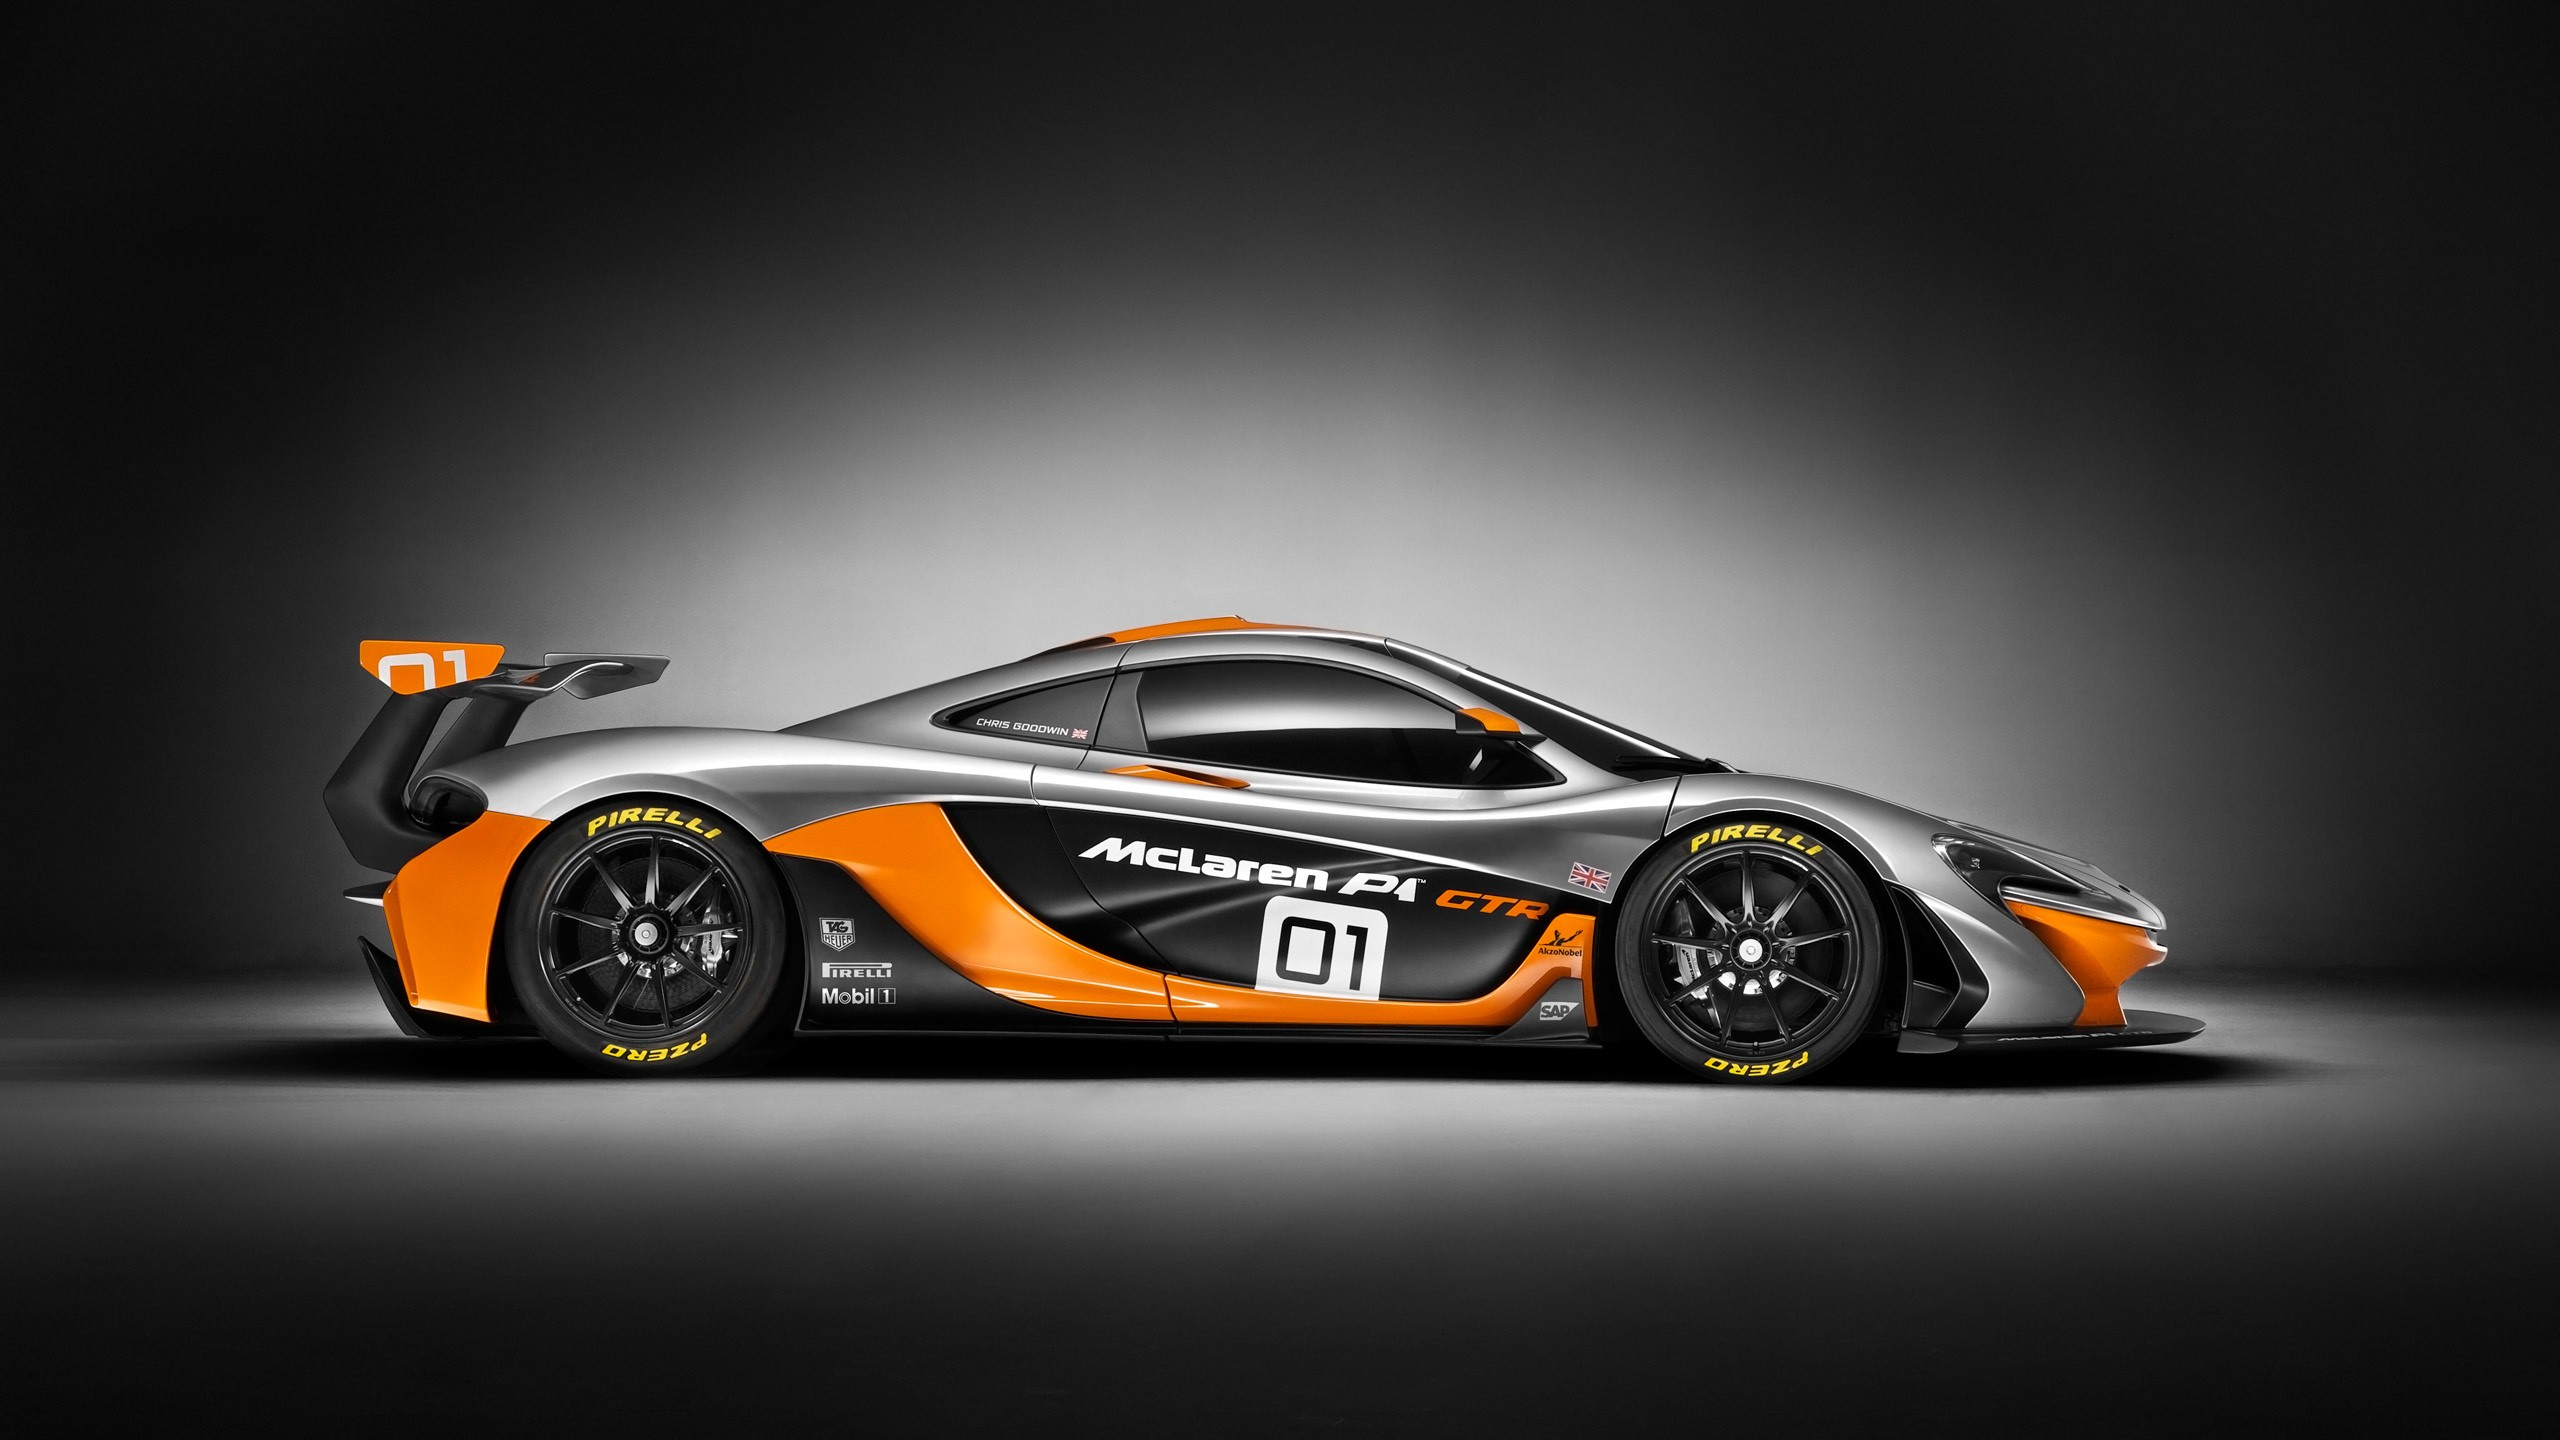 Design Concepts Wallpaper : Mclaren p gtr design concept wallpaper hd car